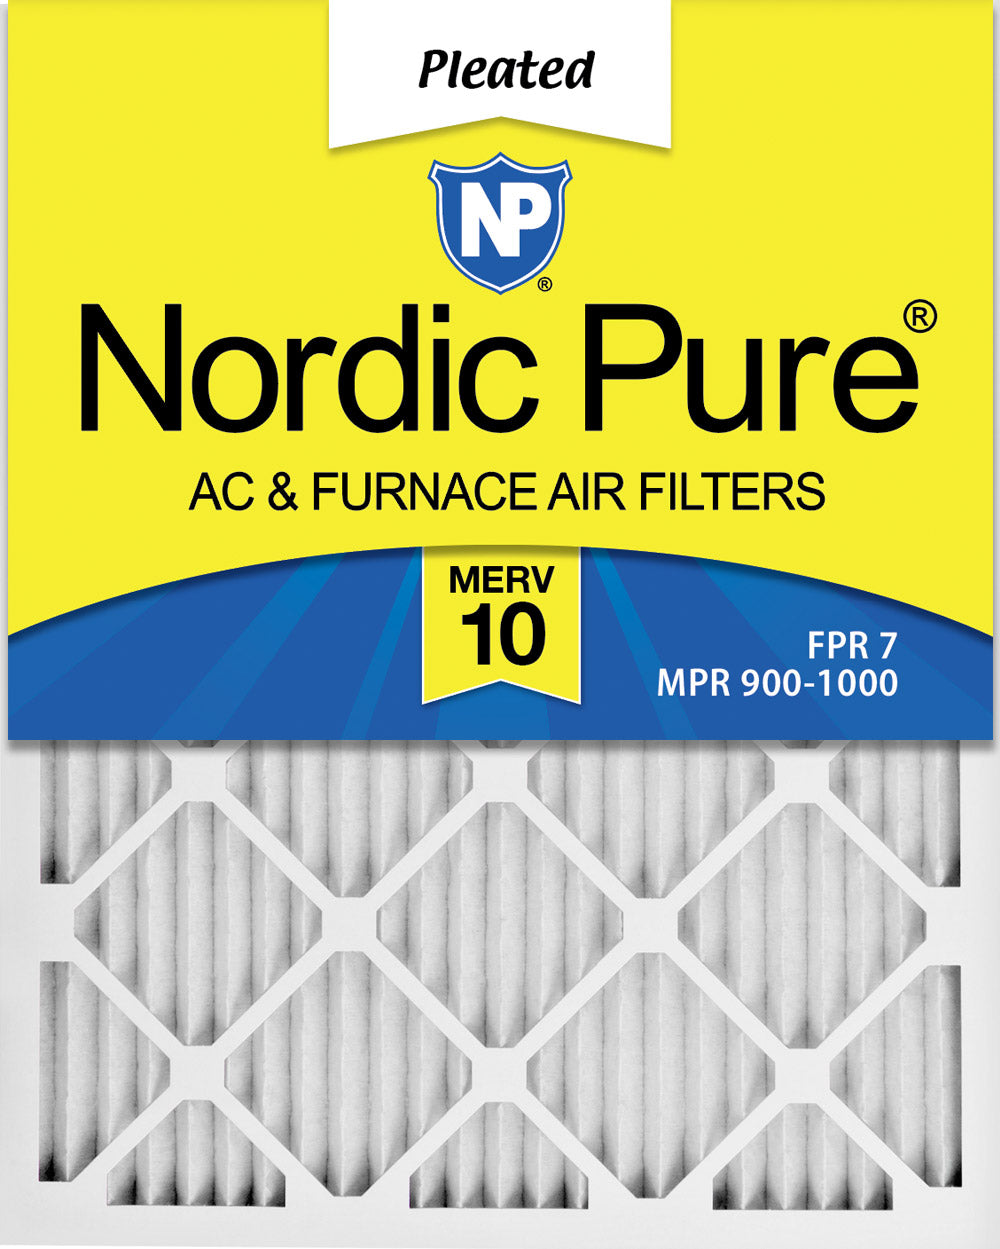 16x25x1 Pleated MERV 10 Air Filters 3 Pack